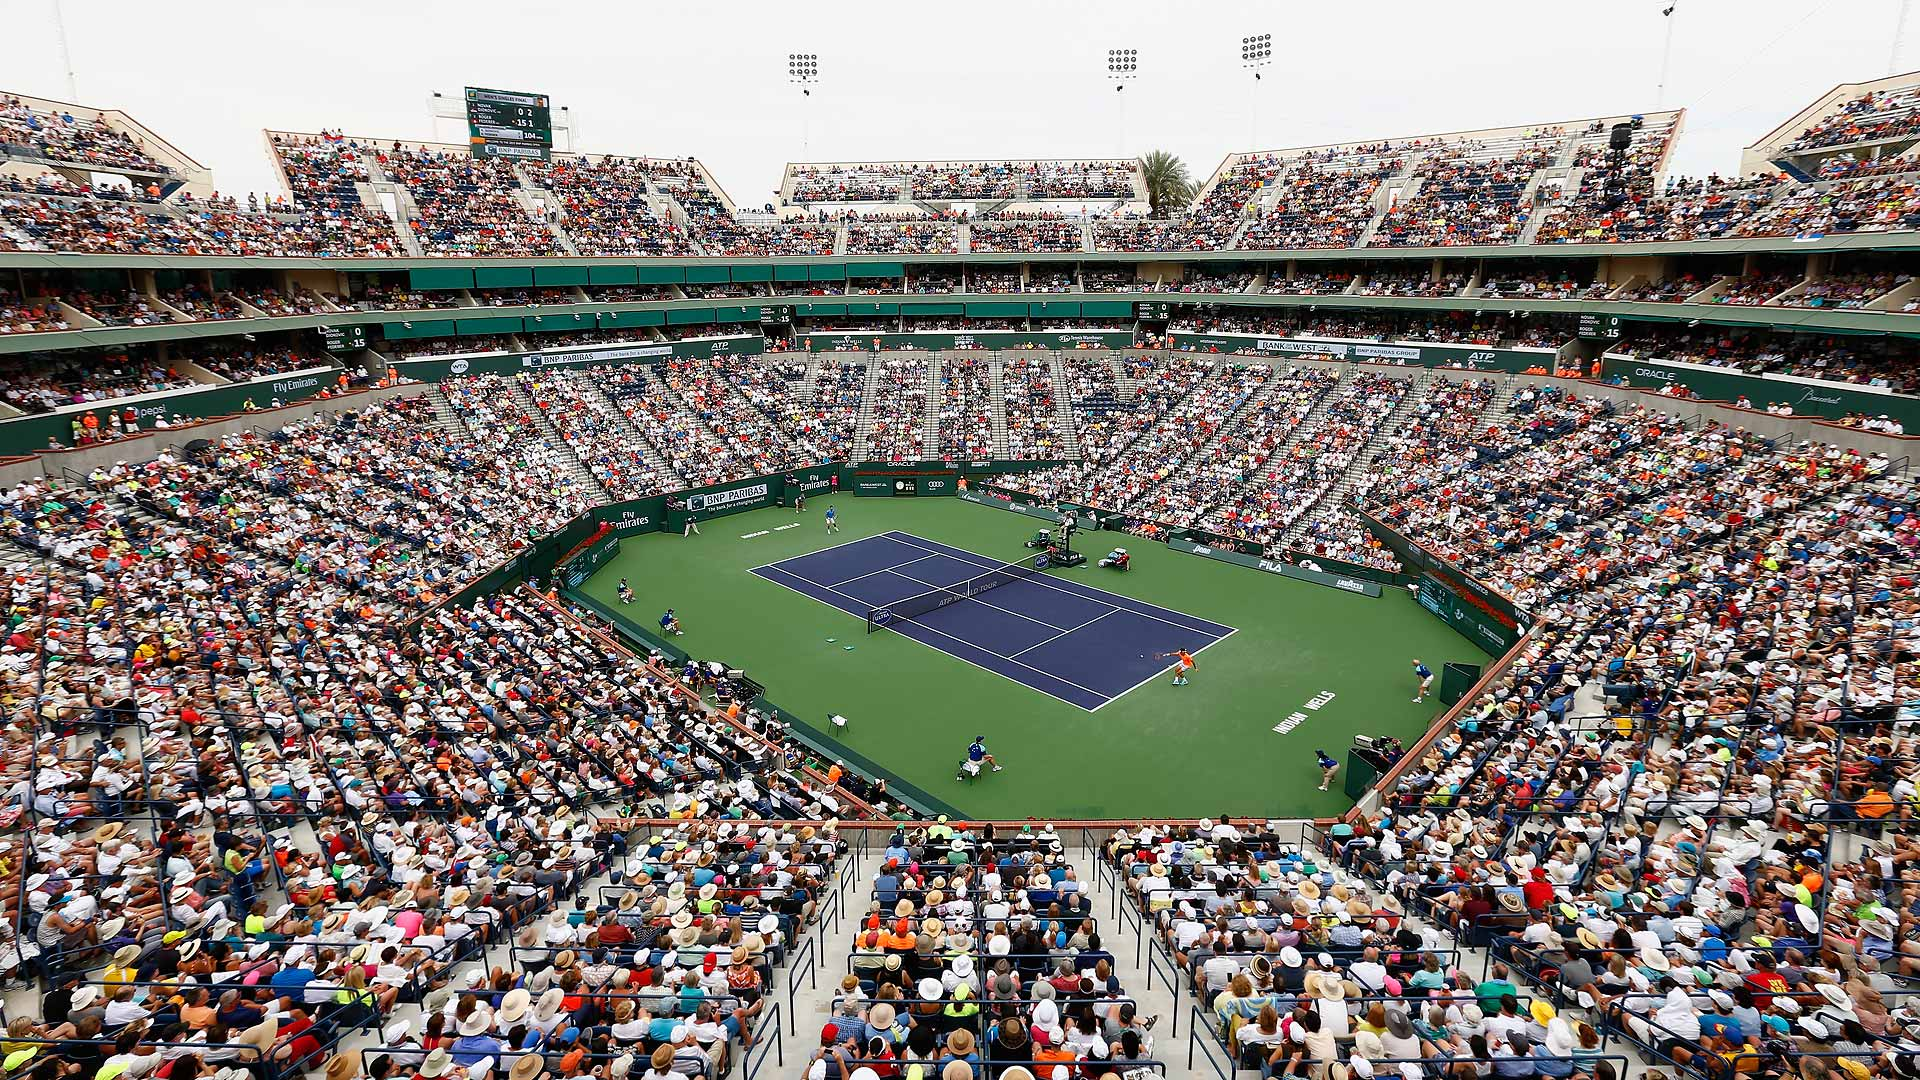 BNP Paribas Open, Indian Wells